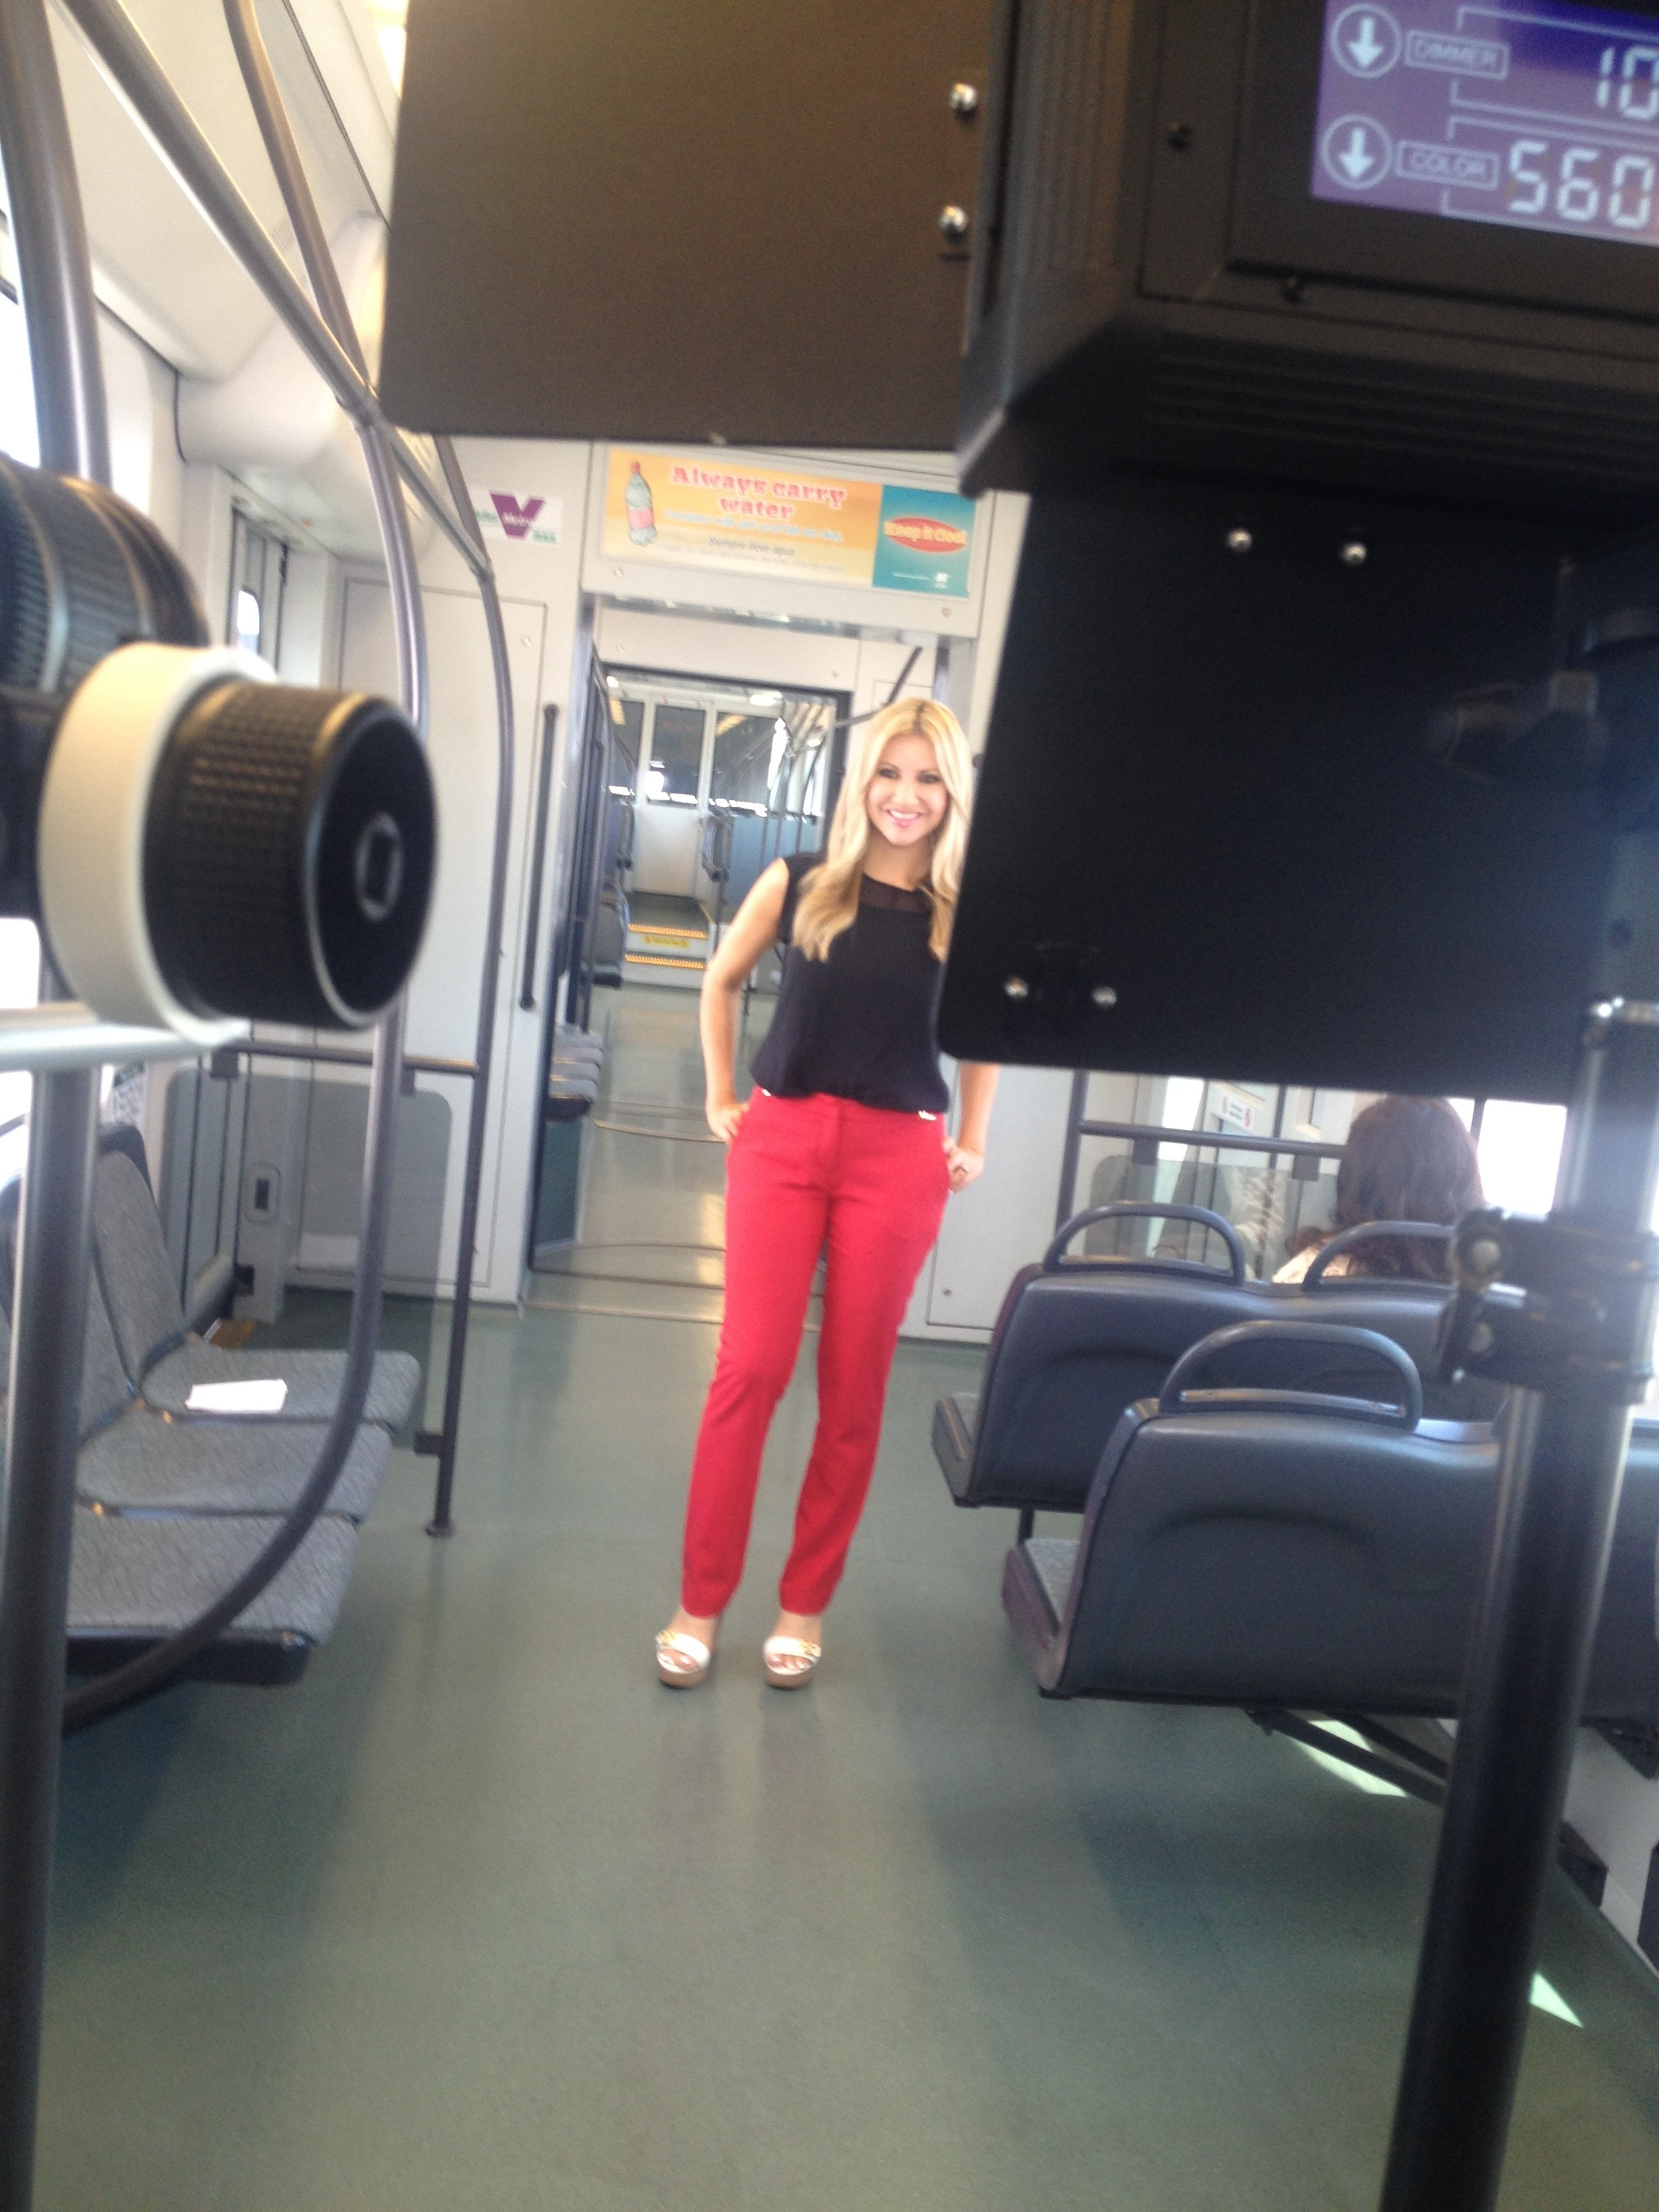 Carey Pena on location for 3TV in Phoenix